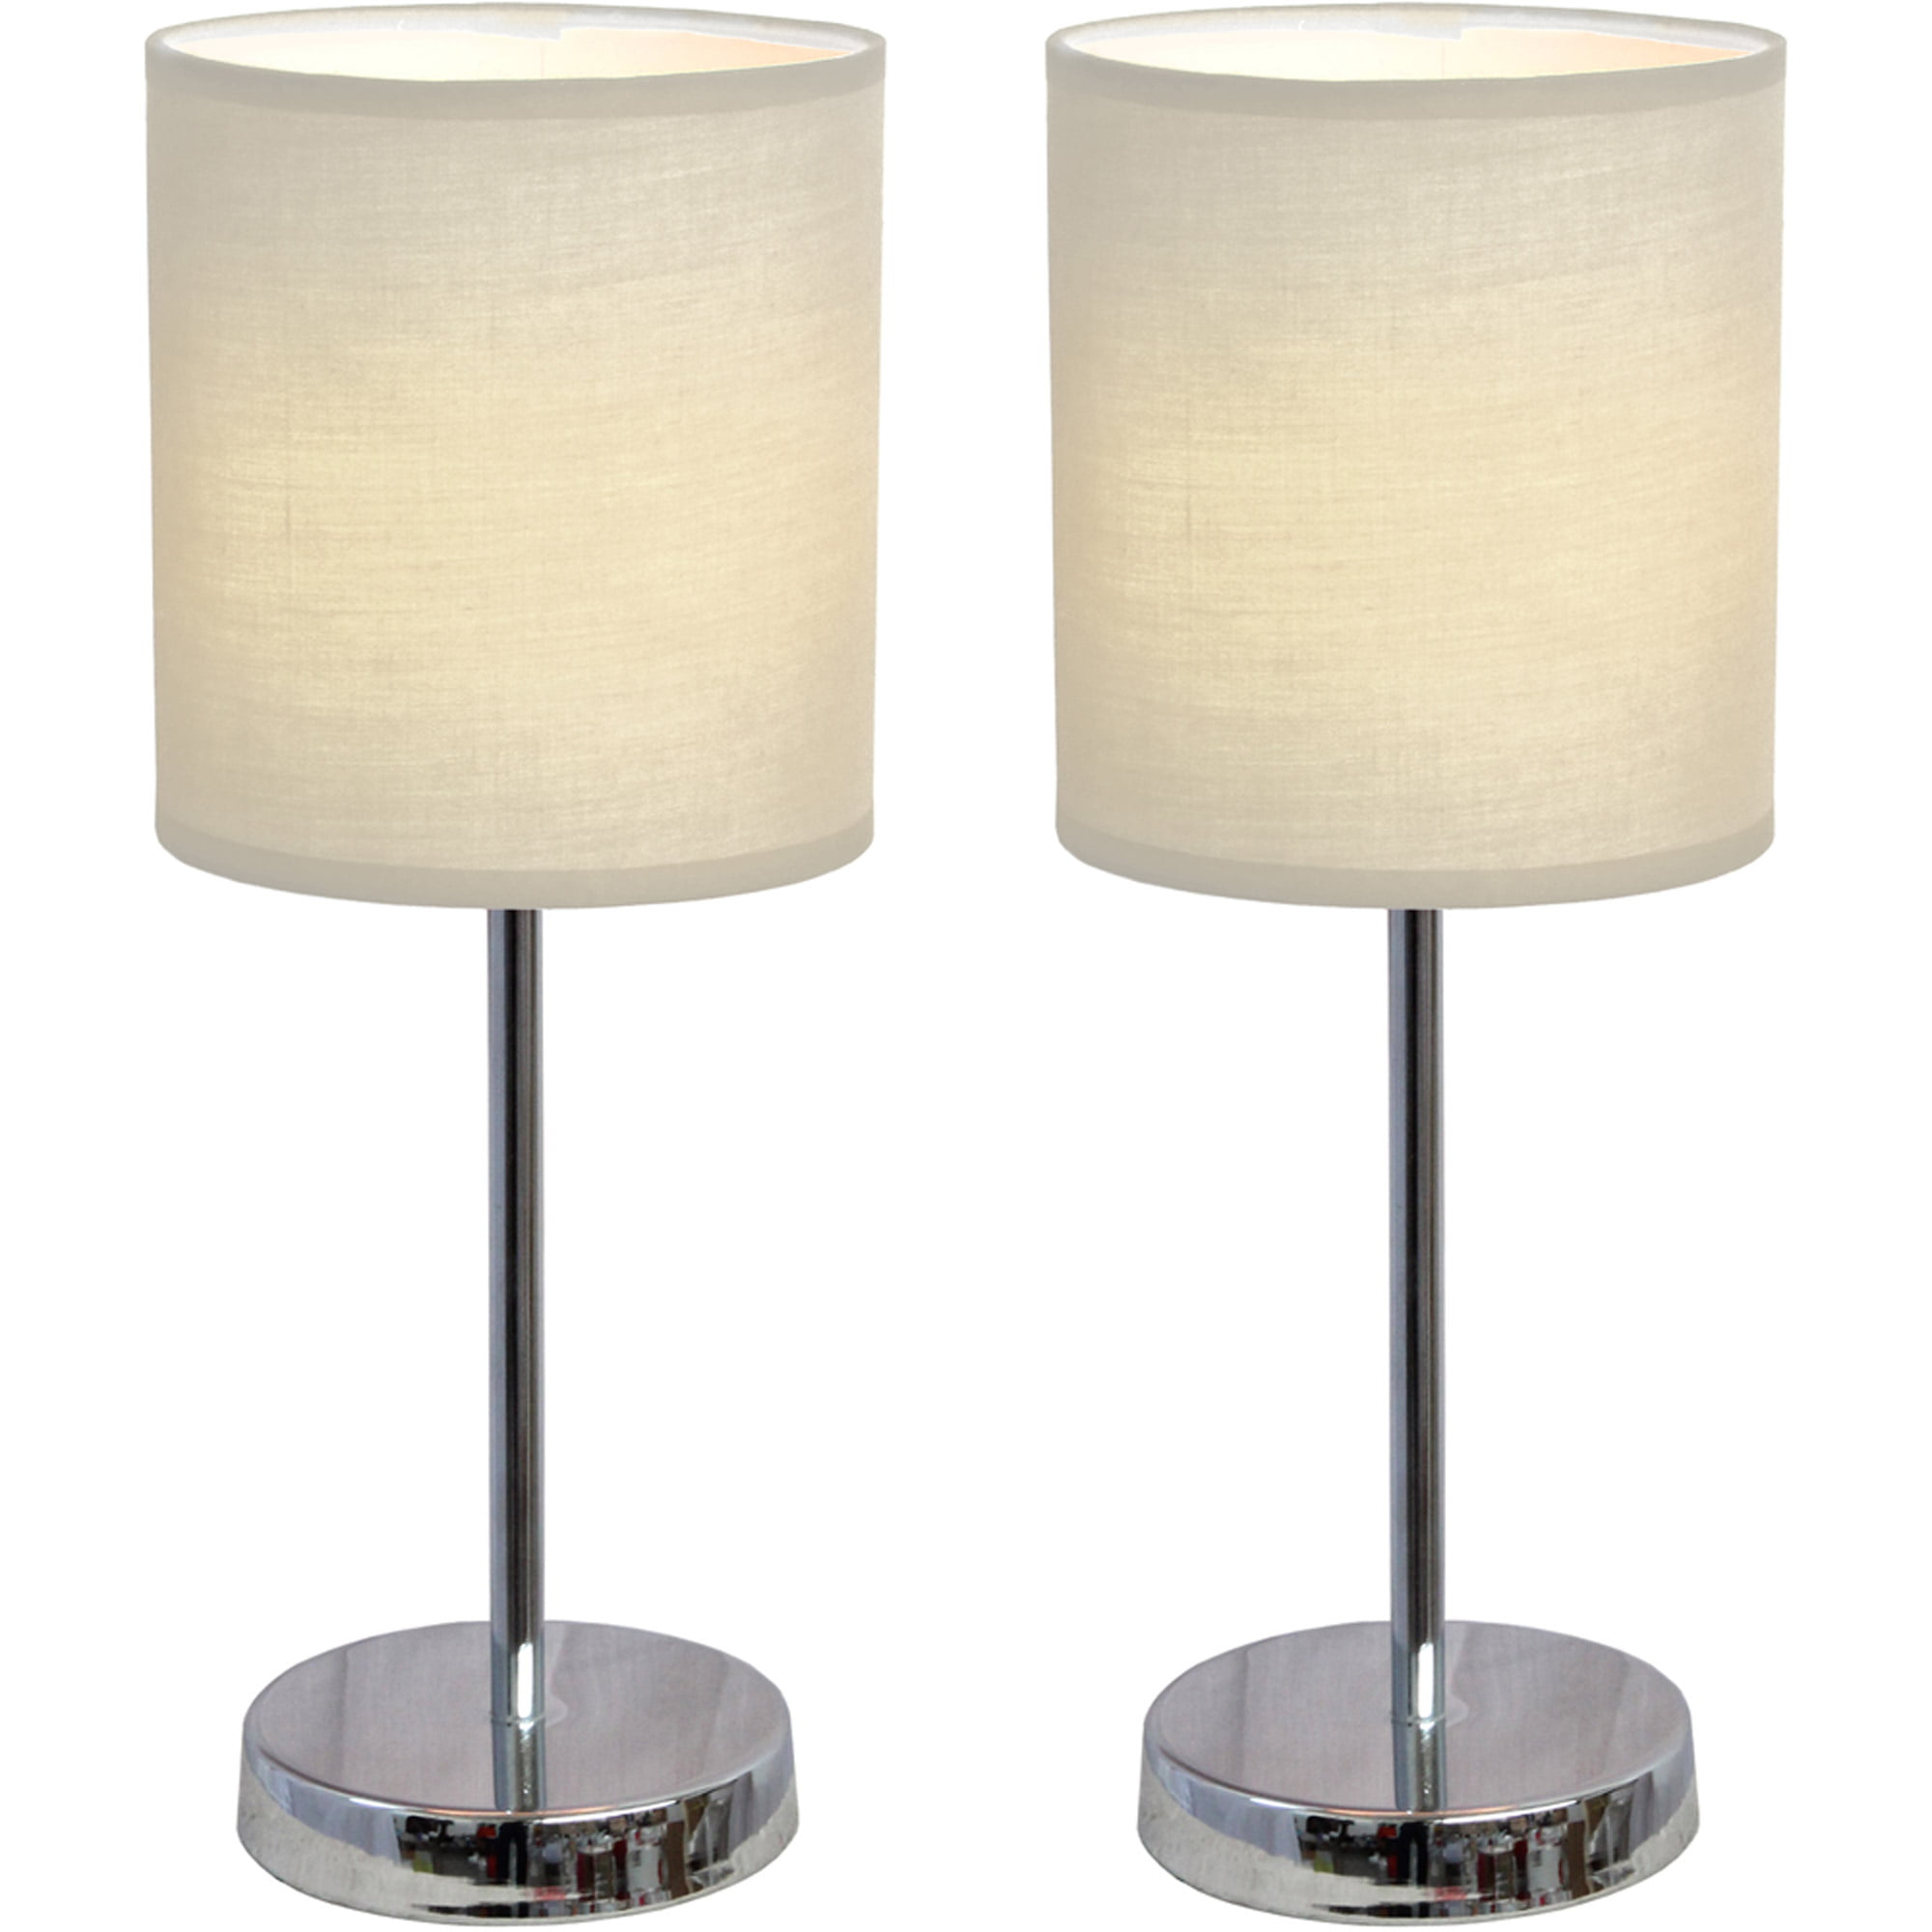 Simple lamps - Simple Designs Chrome Mini Basic Table Lamp With Fabric Shade 2 Pack Set Walmart Com